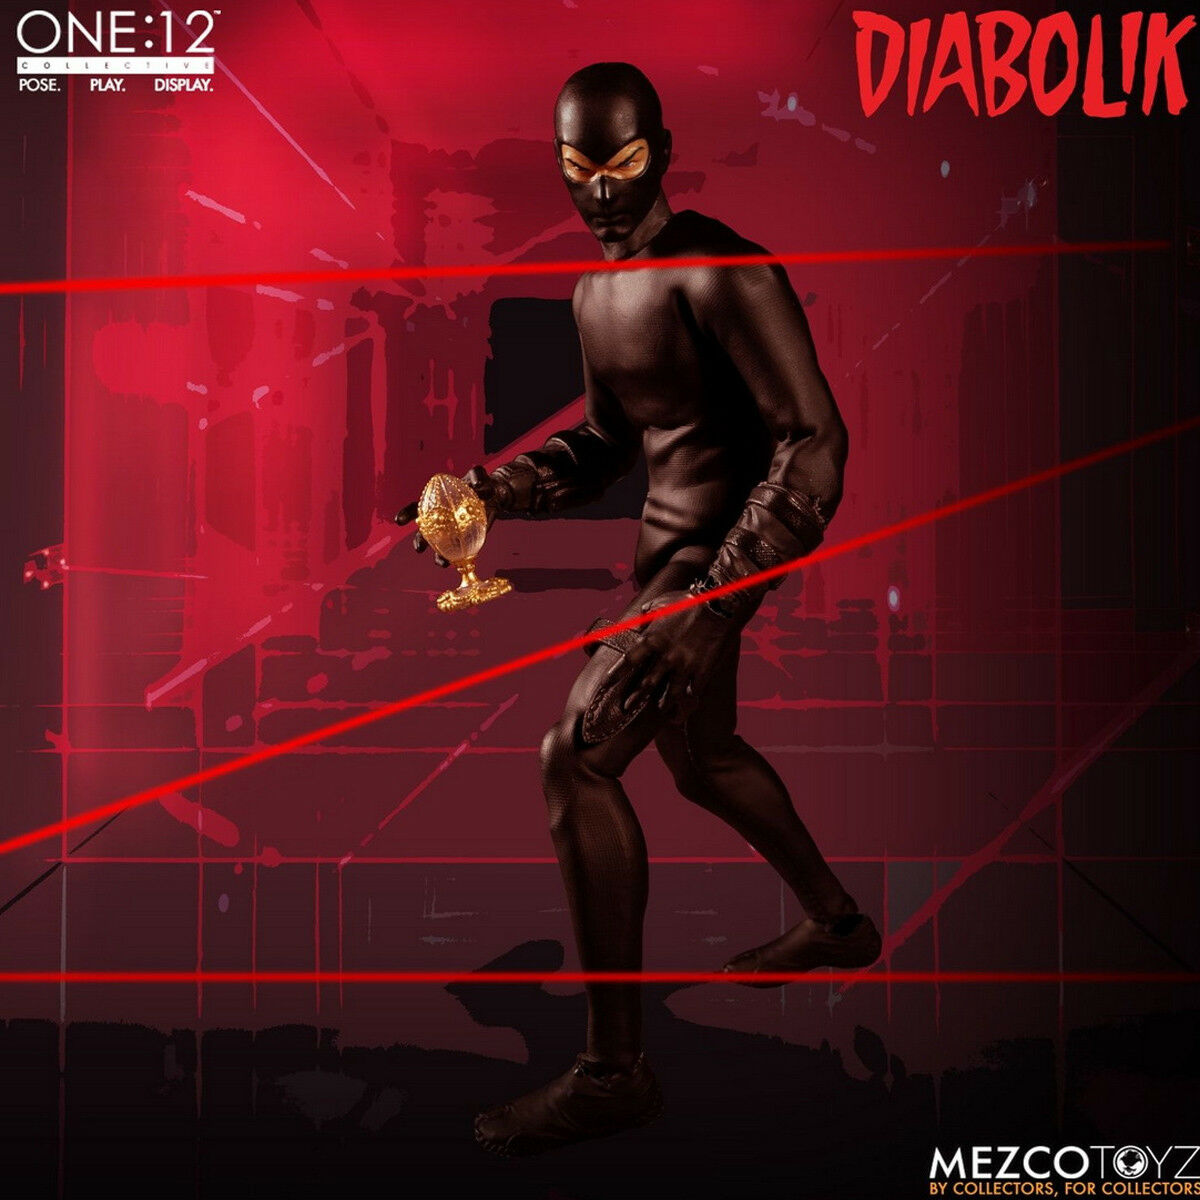 Mezco Toyz 77240 1/12 Scale Diabolik Collective Figure